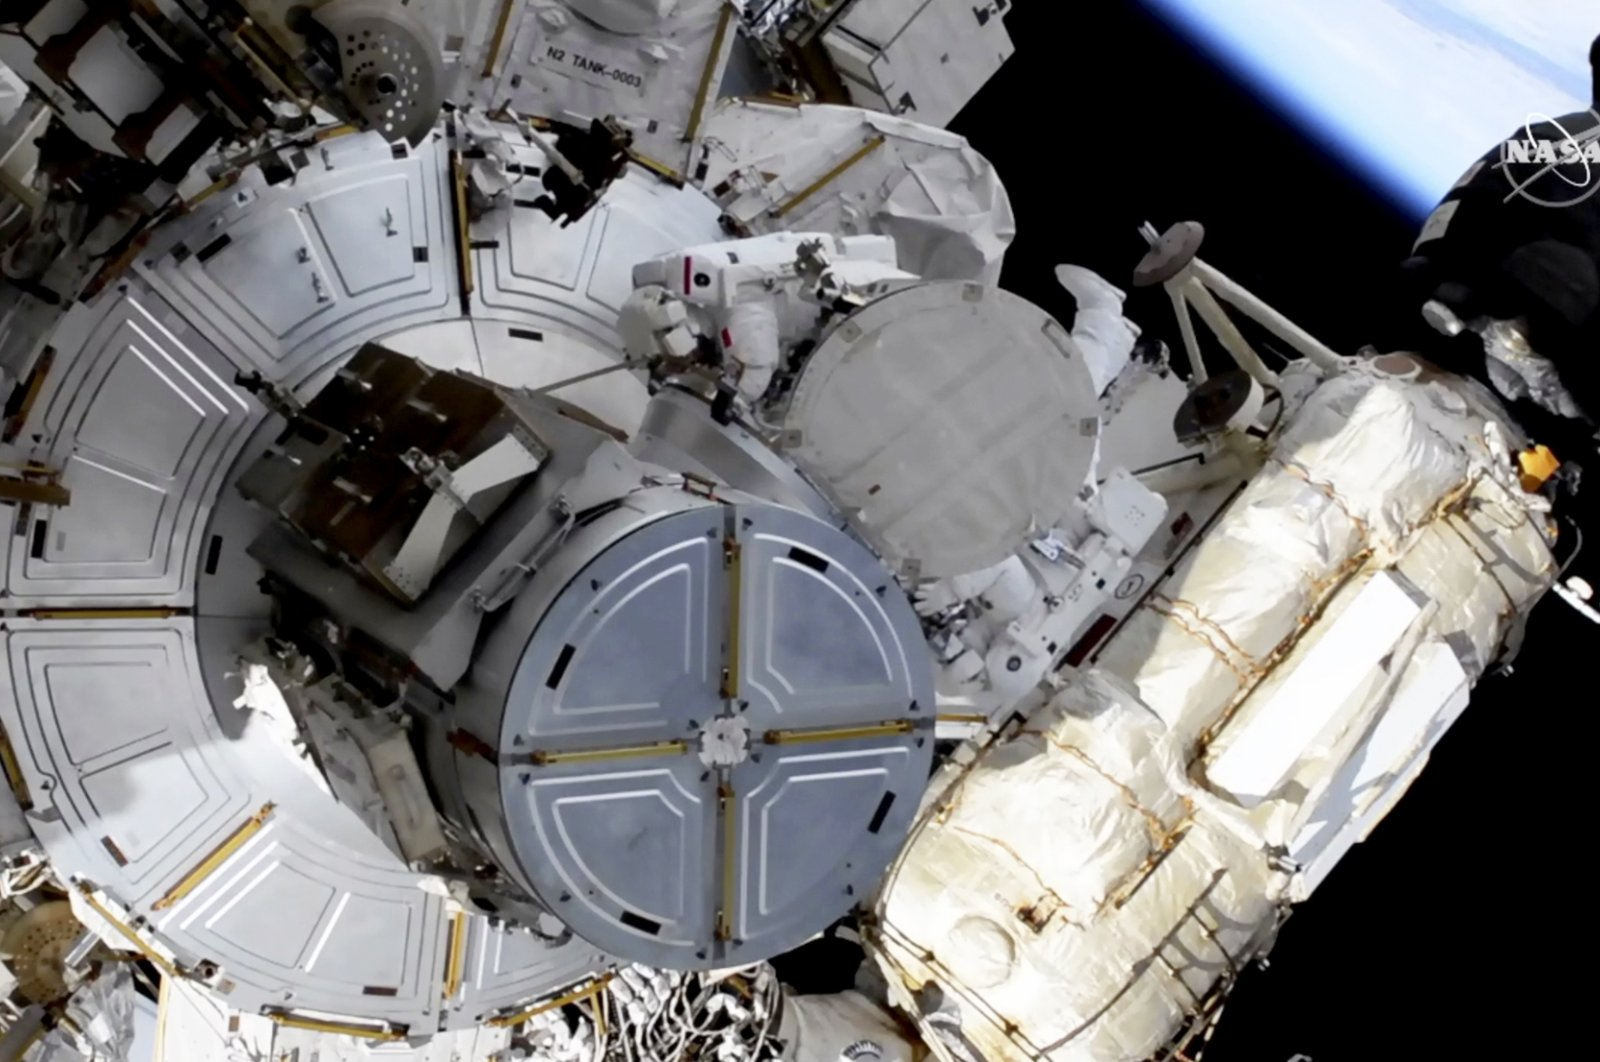 French astronaut Thomas Pesquet (T-C), and NASA astronaut Shane Kimbrough venture out on a spacewalkto outfit the International Space Station with powerful, new solar panels to handle the growing electrical demands from upcoming visitors, June 16, 2021. (NASA via AP)